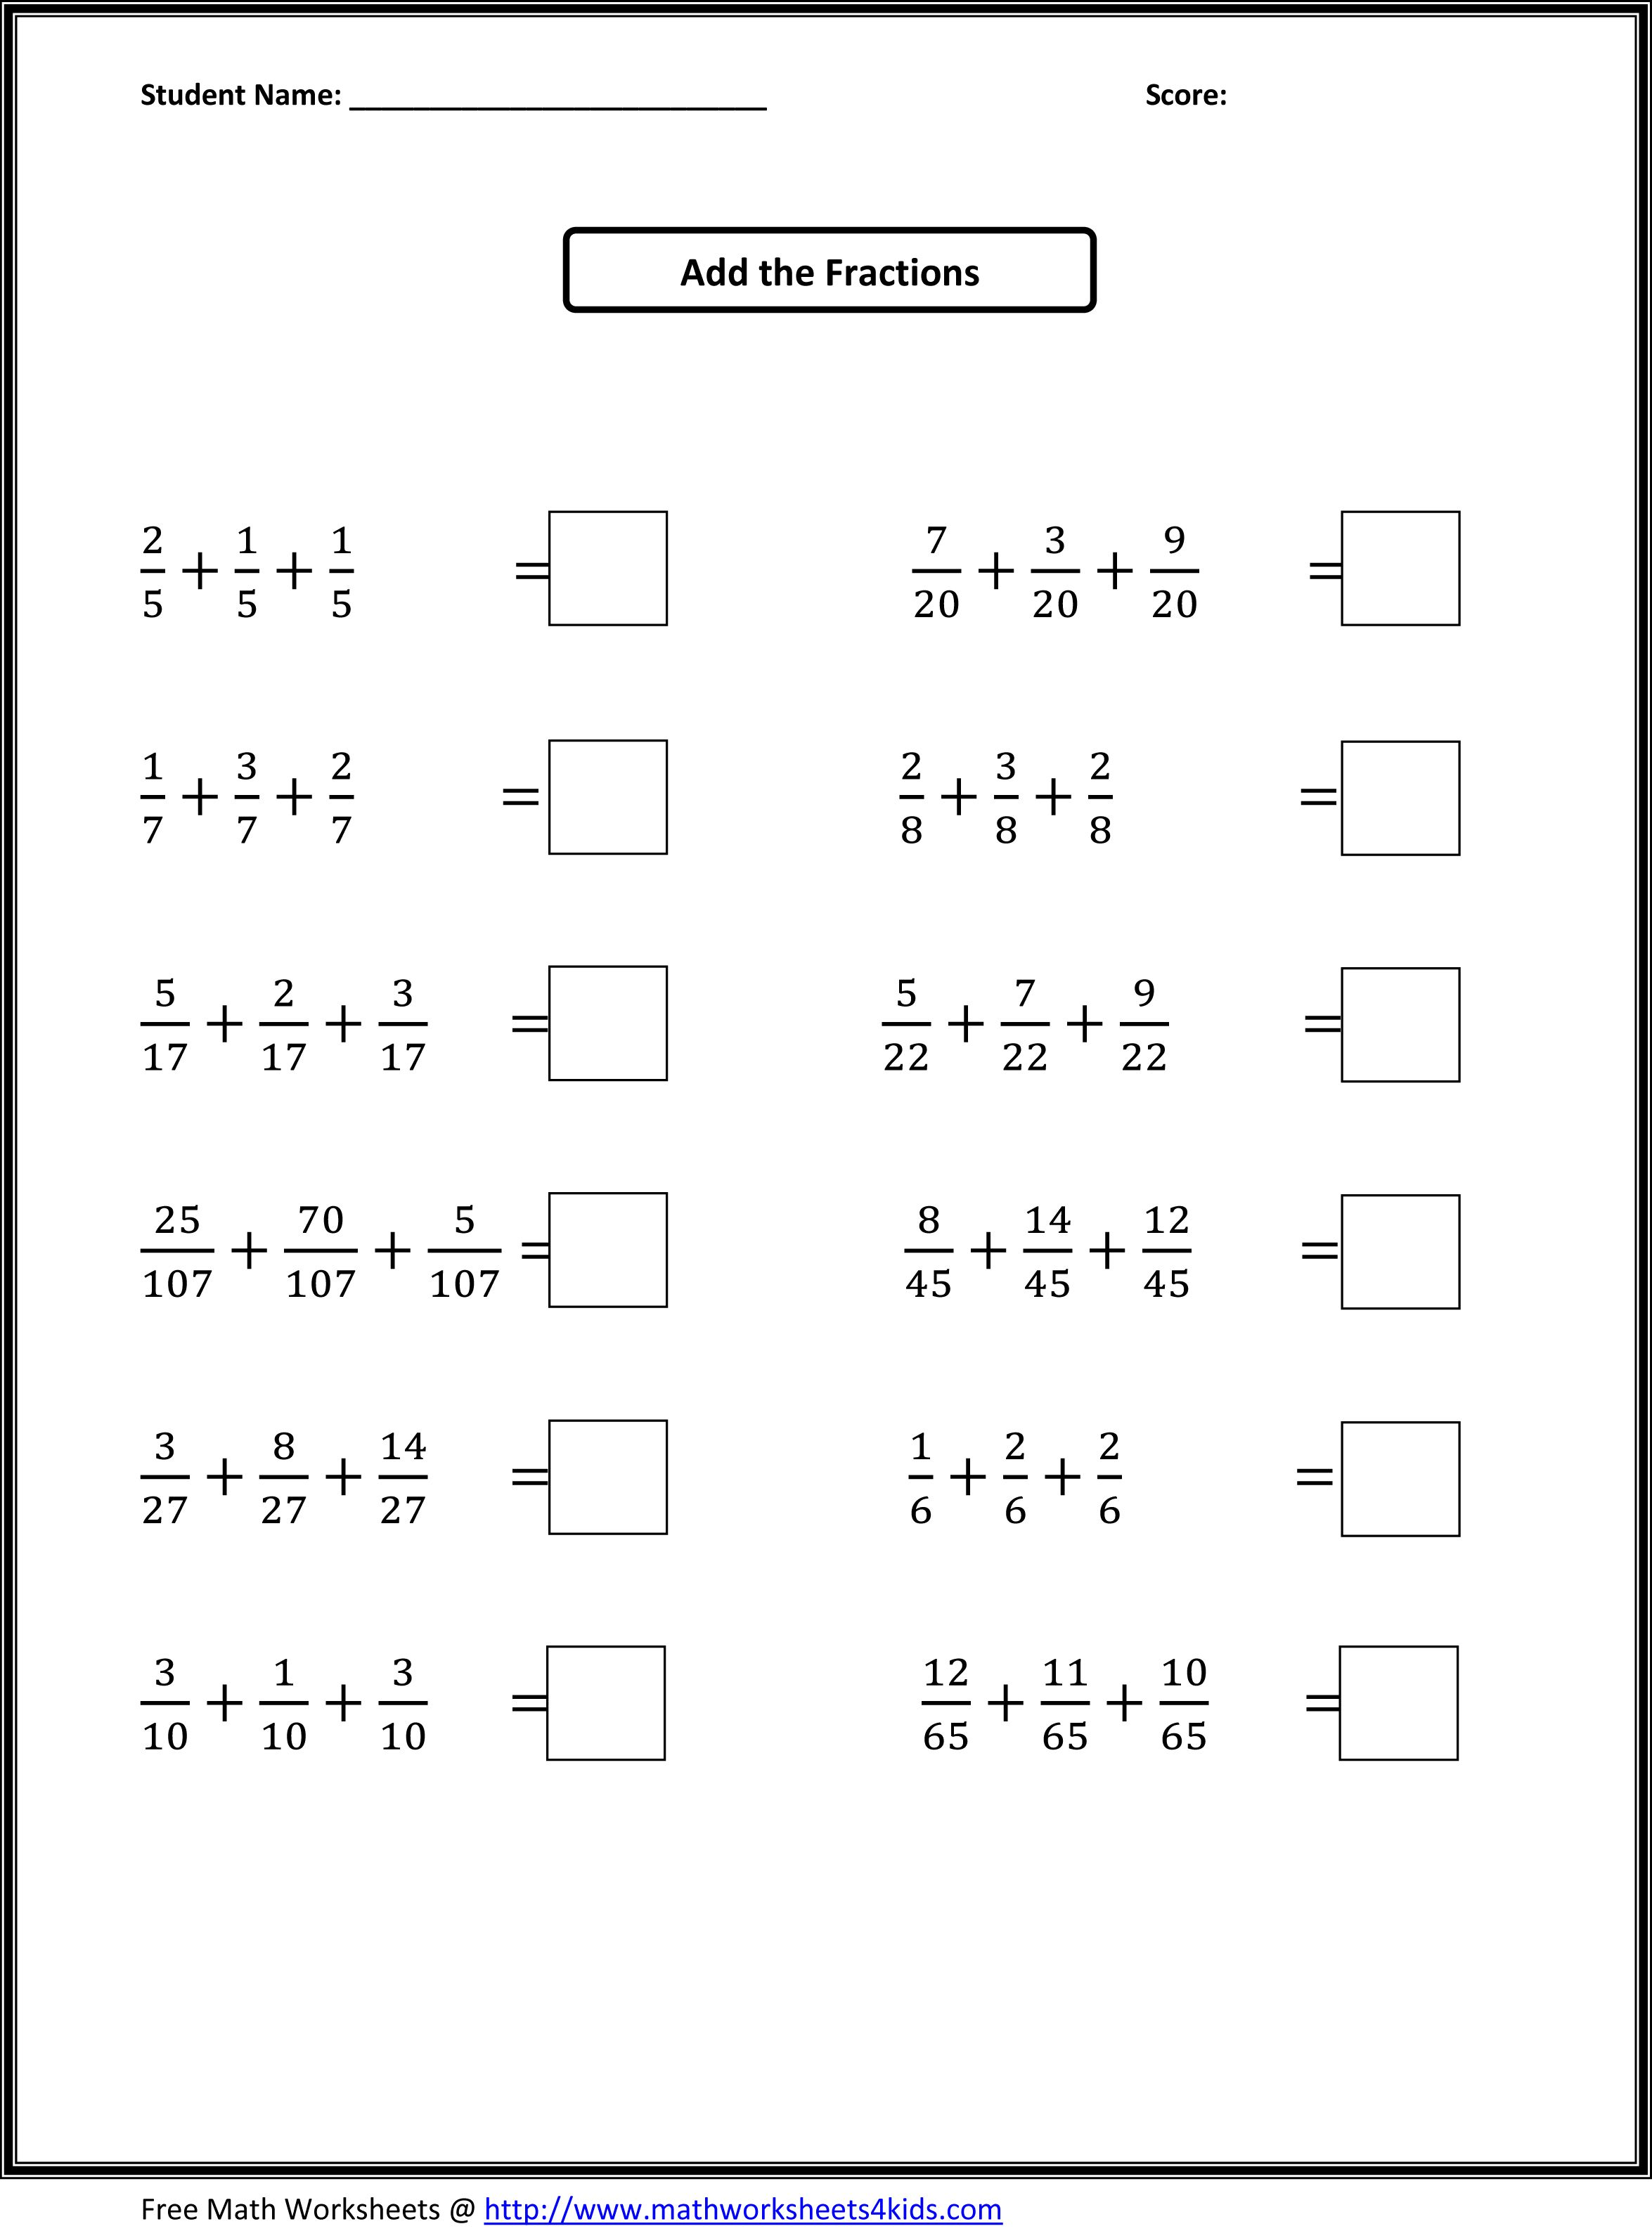 Worksheet Math For 4th Grade Worksheets 1000 images about math worksheets on pinterest 4th grade geometry and math